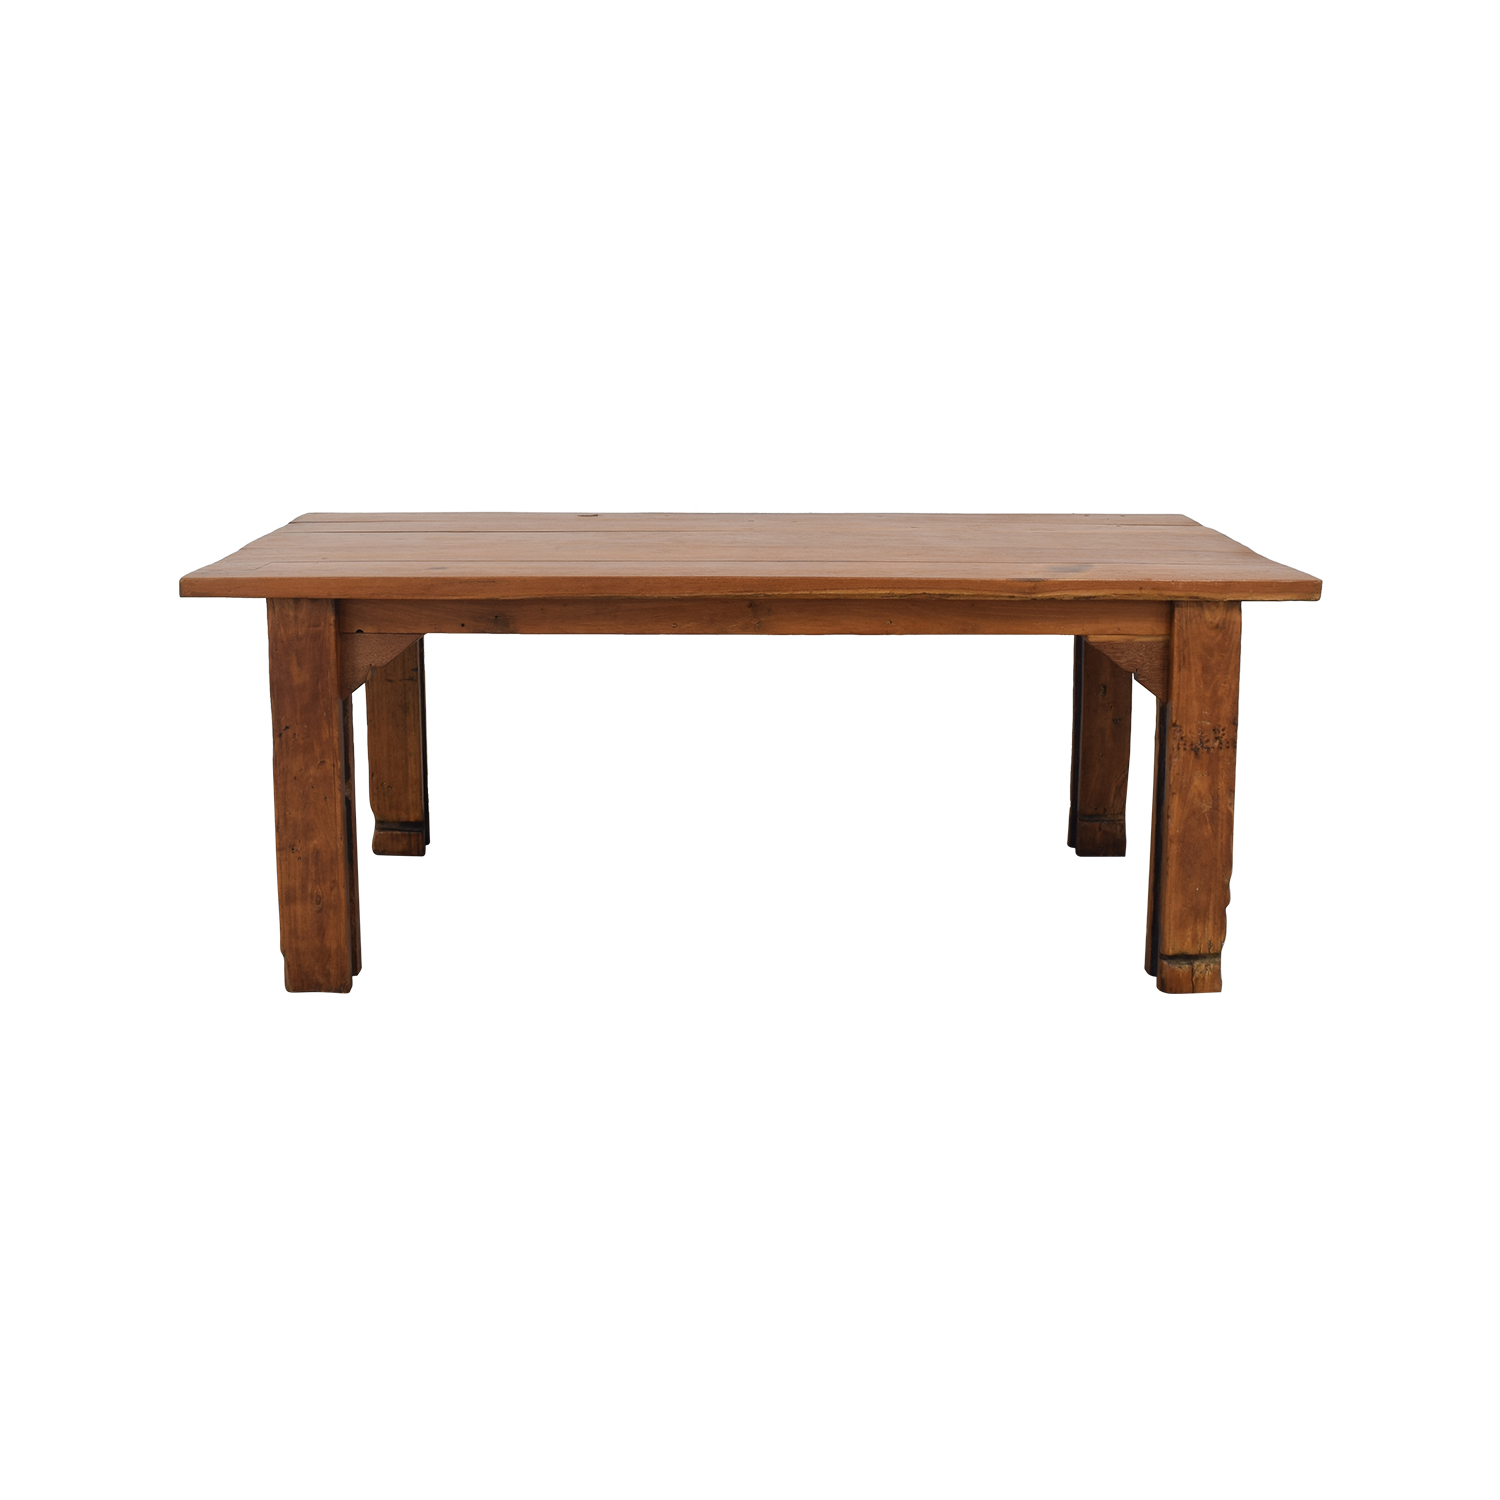 ABC Carpet & Home ABC Carpet & Home Dining Table